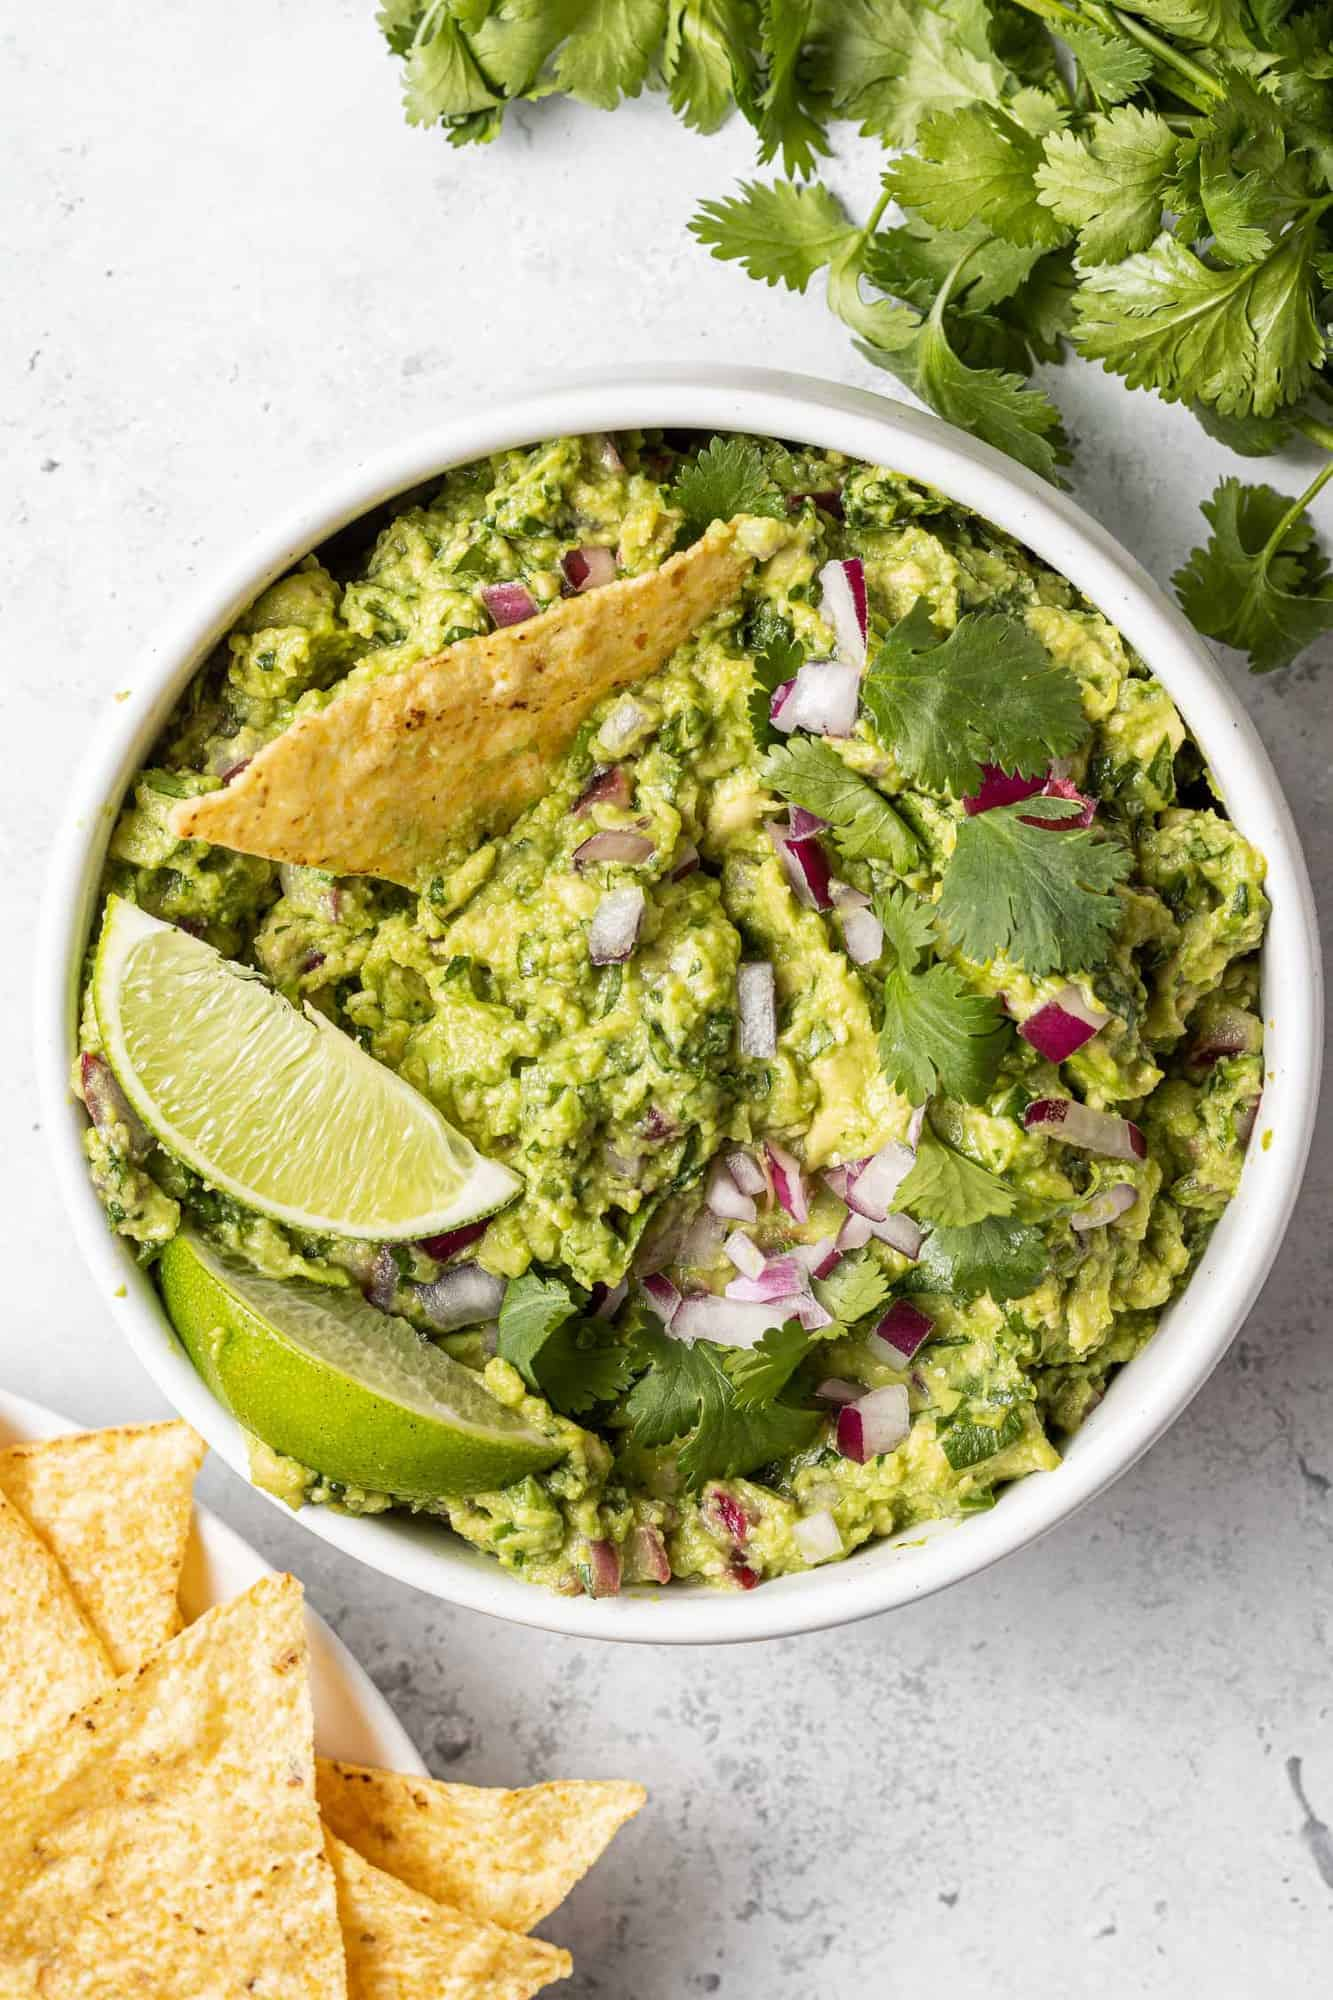 Overhead view of a white bowl of guacamole with a chip dipped in and lime wedges on top.